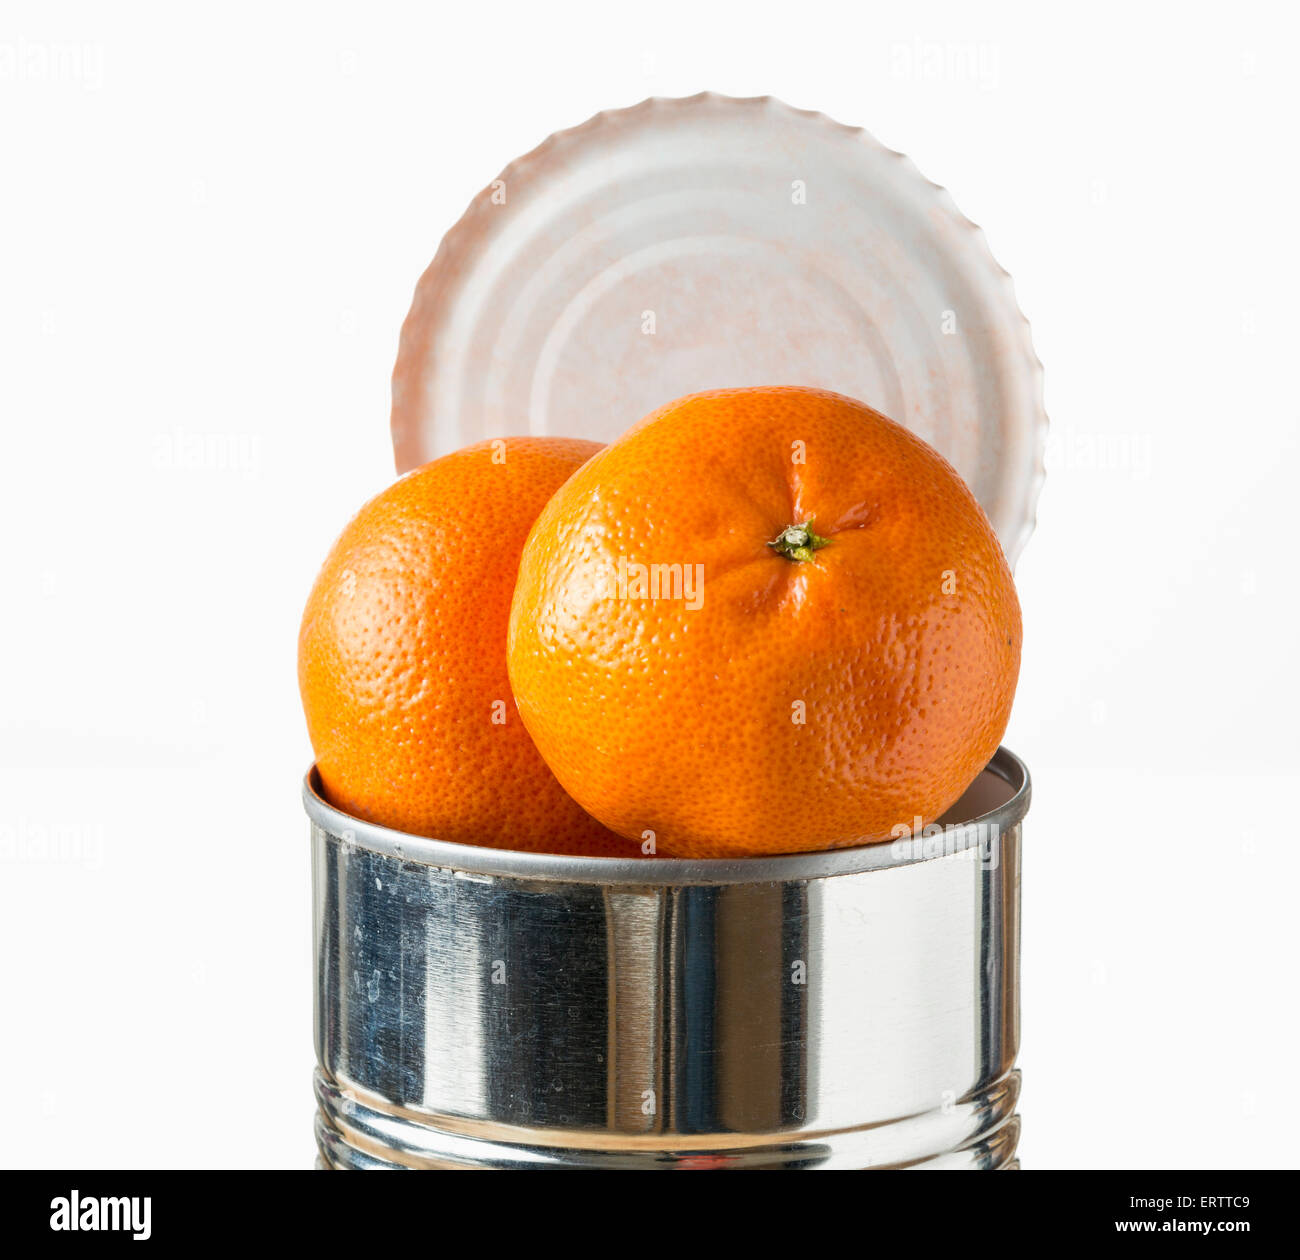 Oranges / satsumas fruit heaped inside opened tin can - fresh food coming in cans concept - Stock Image